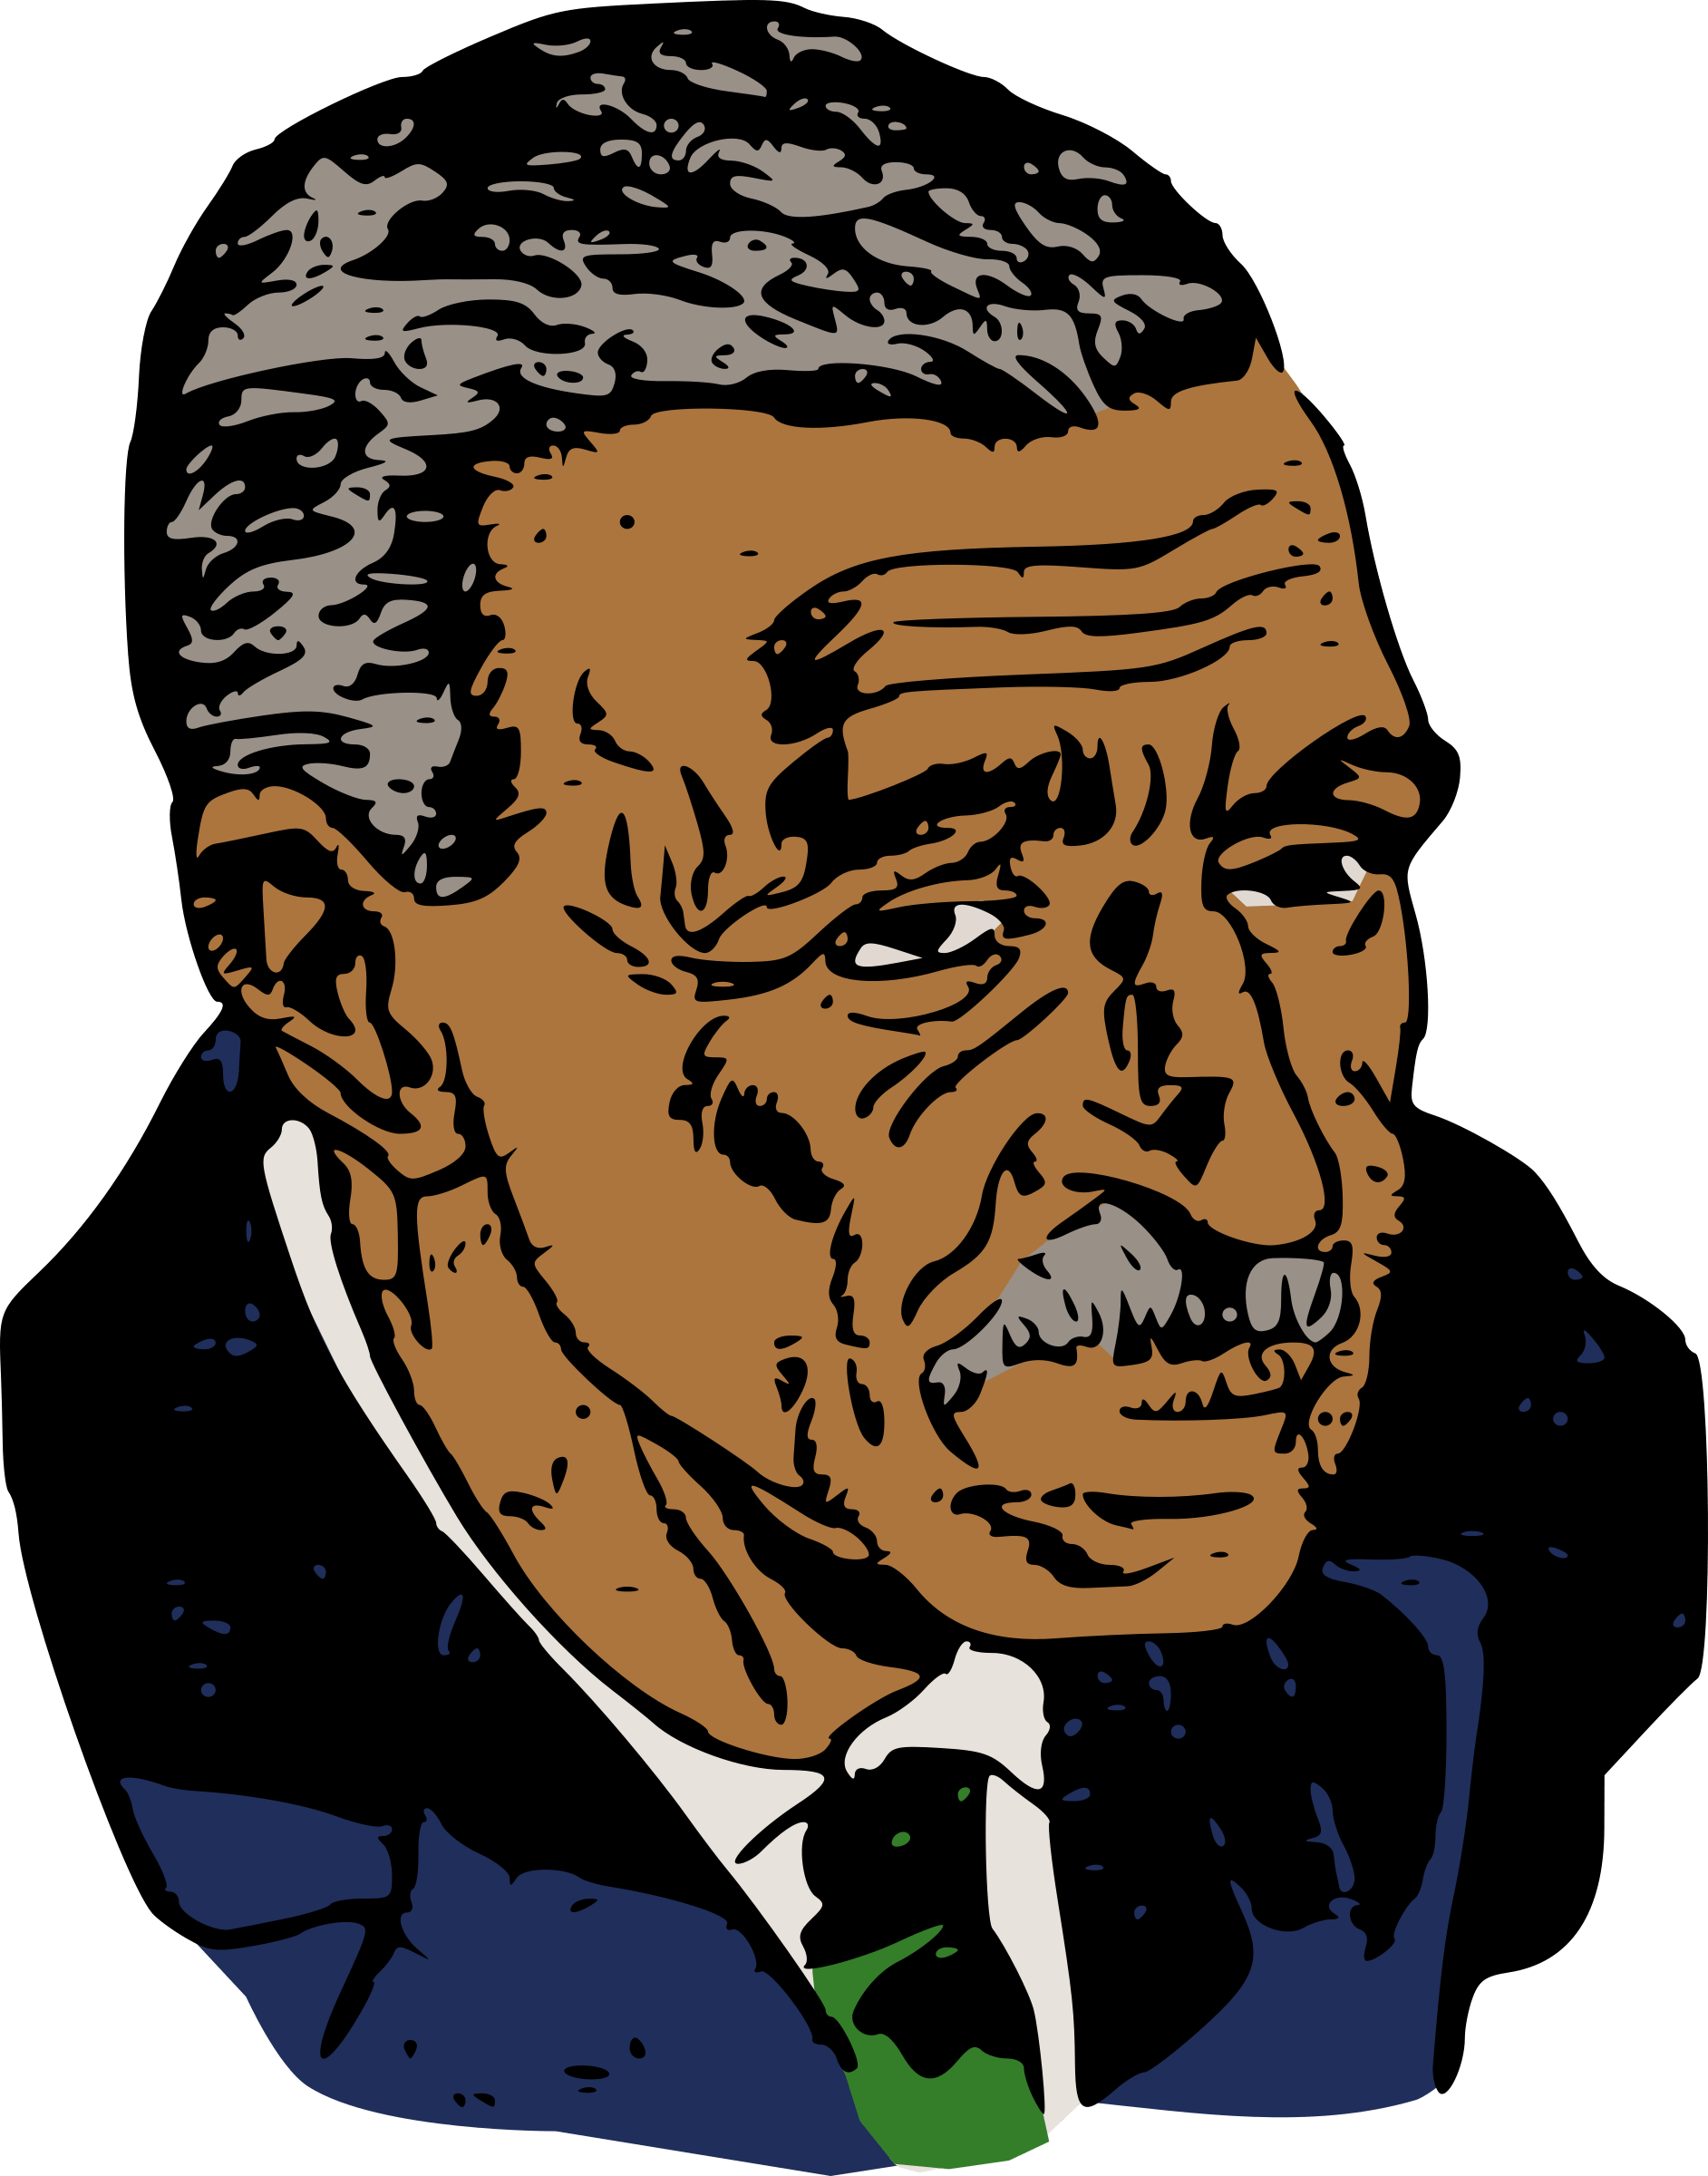 George washington carver clipart banner black and white download George washington carver clipart 5 » Clipart Portal banner black and white download